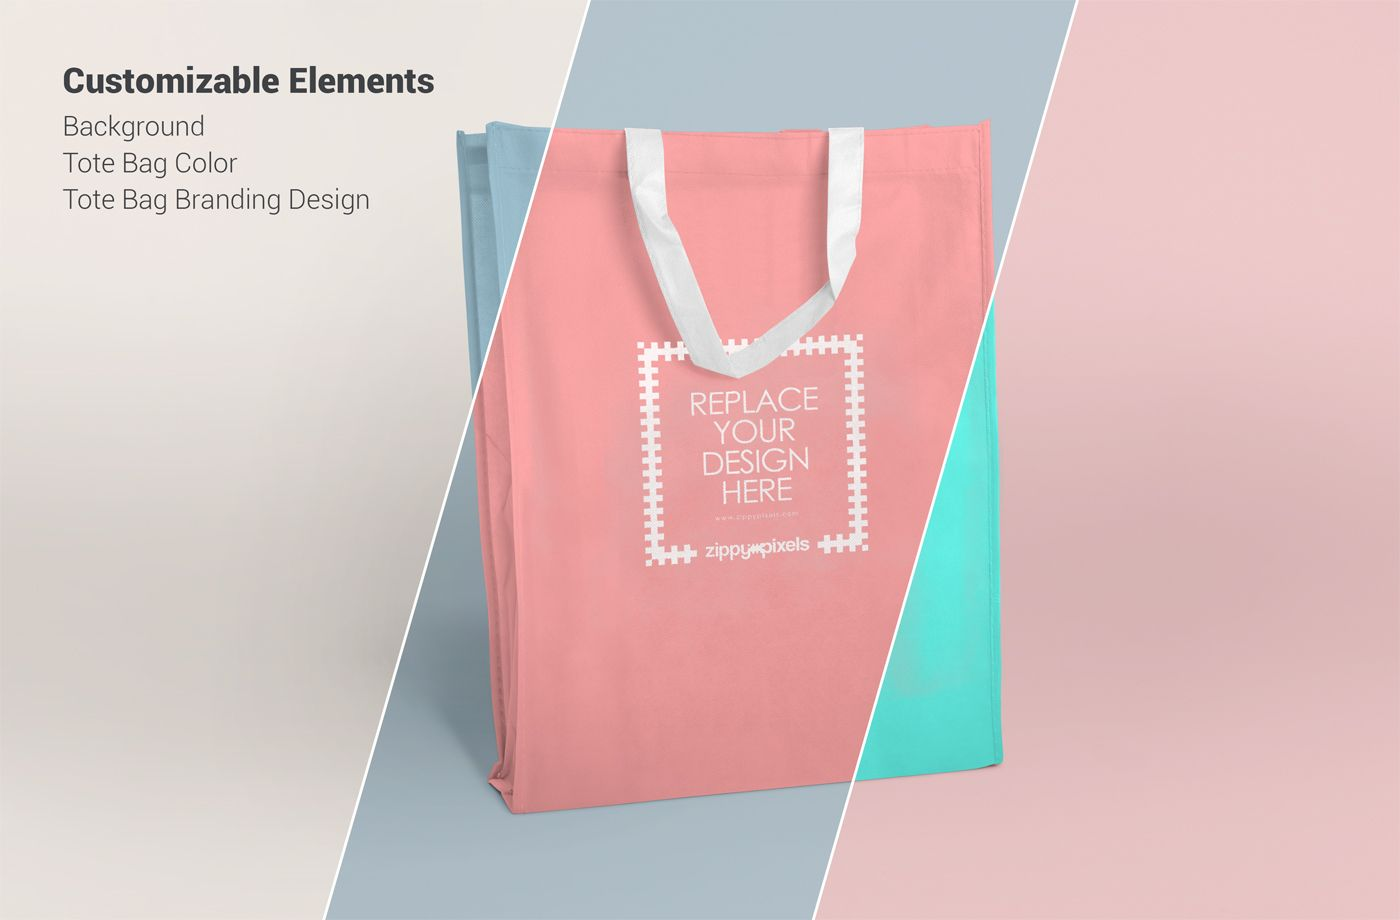 2 High Resolution Free Tote Bag Mockups For Presenting Your Brand